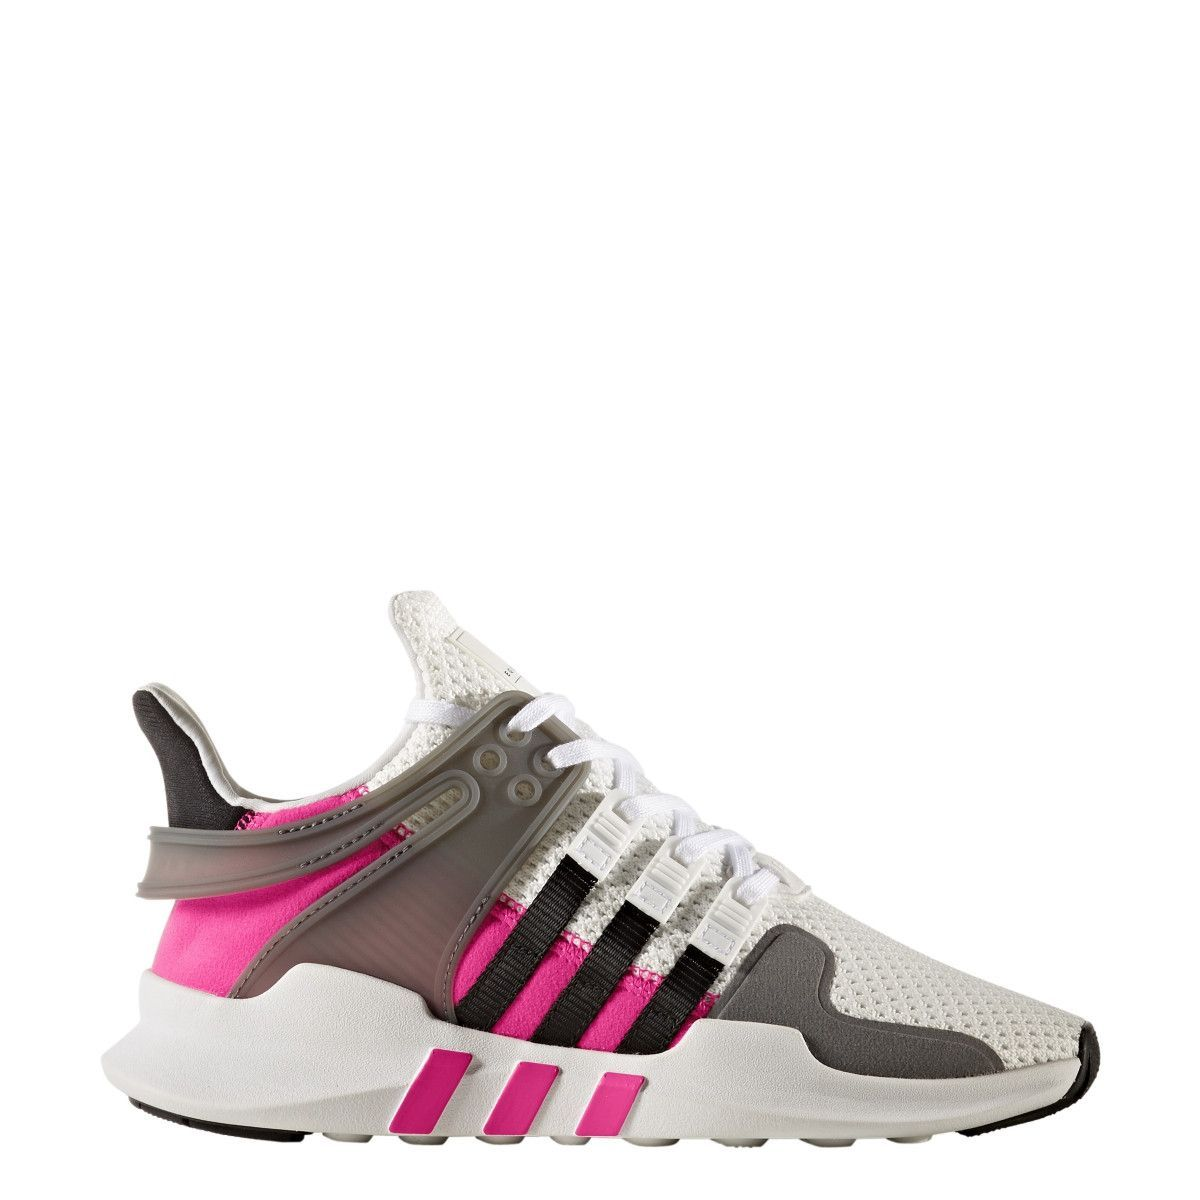 Adidas eqt support adv kids sneakers  543e5f56c97